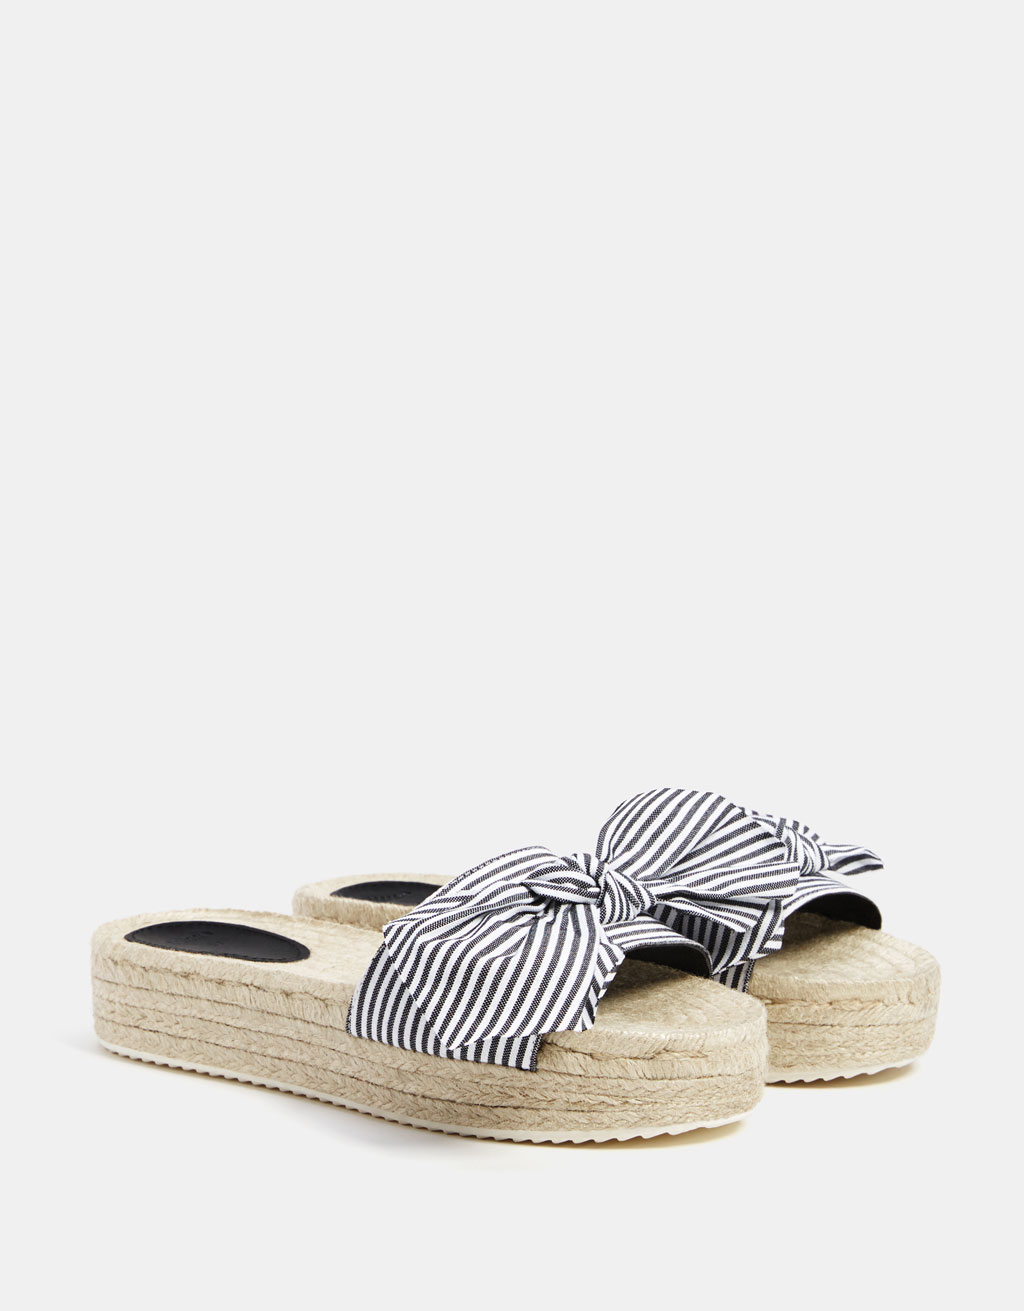 Striped slides with jute platforms